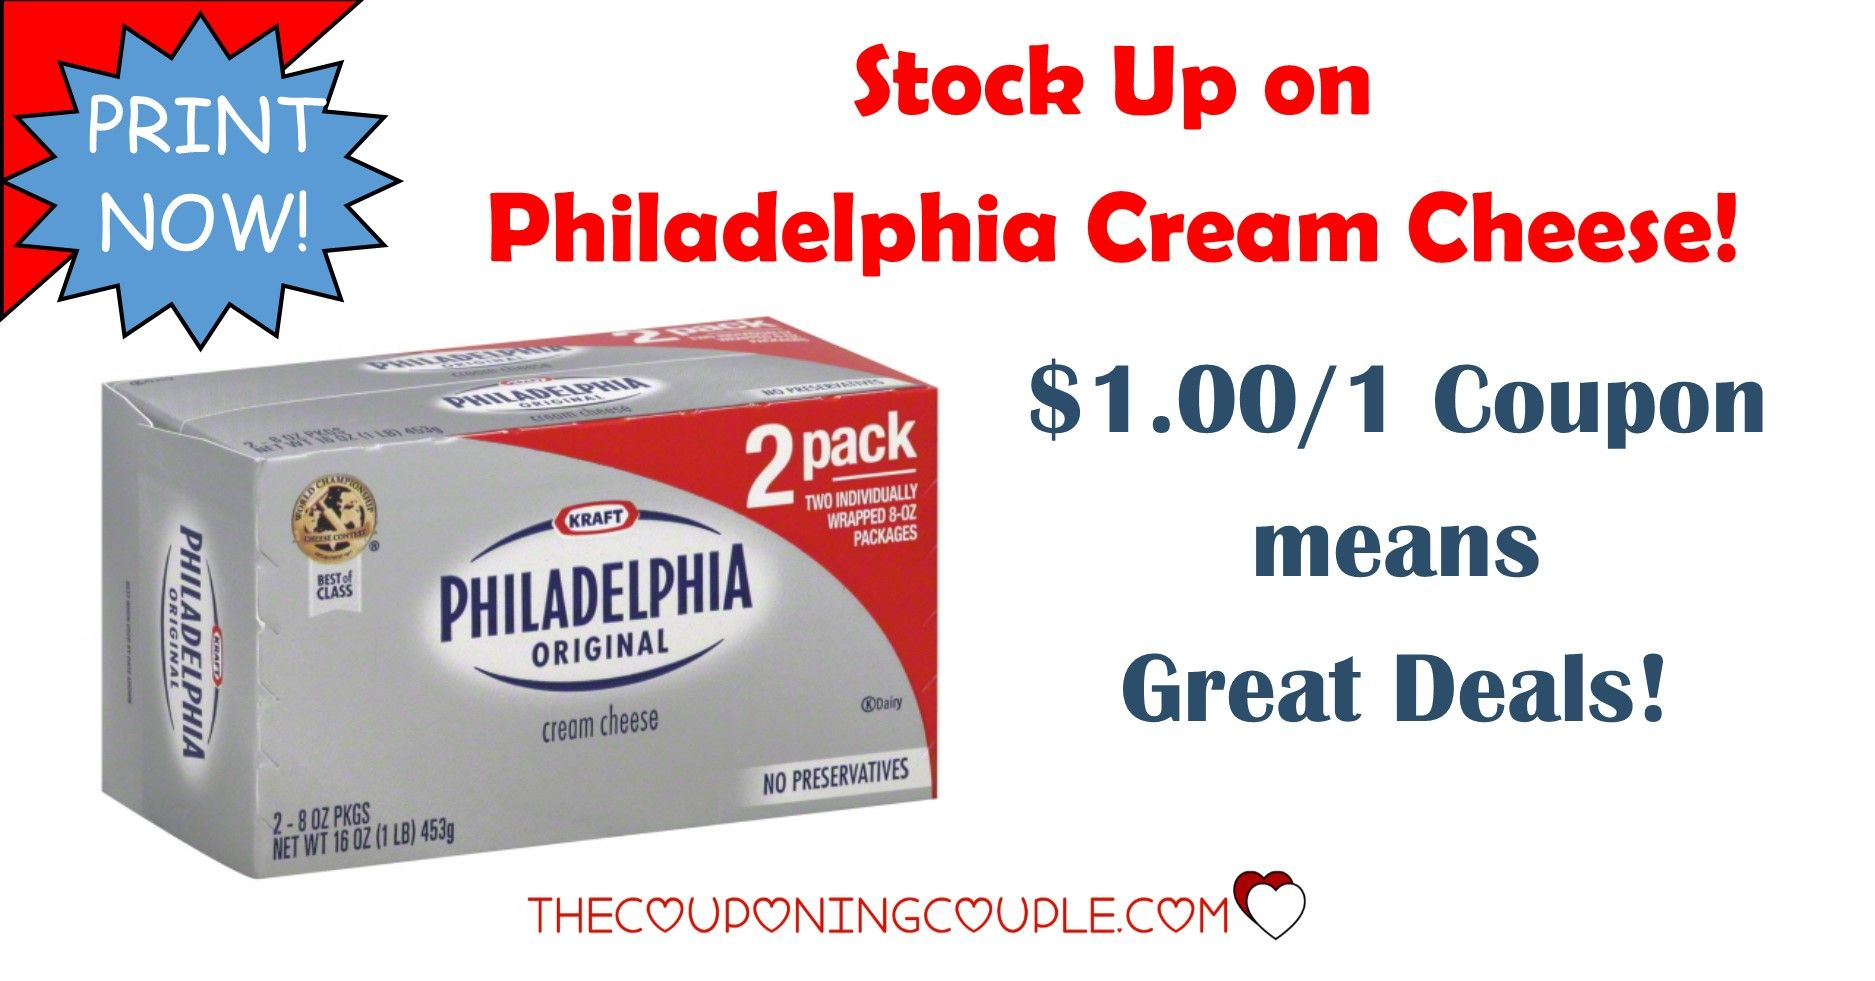 **PRINT NOW** There is a $1.00/1 Philly Cream Cheese coupon to print now!  Use at your favorite store or get a deal at Walmart!  Click the link below to get all of the details ► http://www.thecouponingcouple.com/stock-up-on-philly-cream-cheese-with-1-001-coupon/ #Coupons #Couponing #CouponCommunity  Visit us at http://www.thecouponingcouple.com for more great posts!